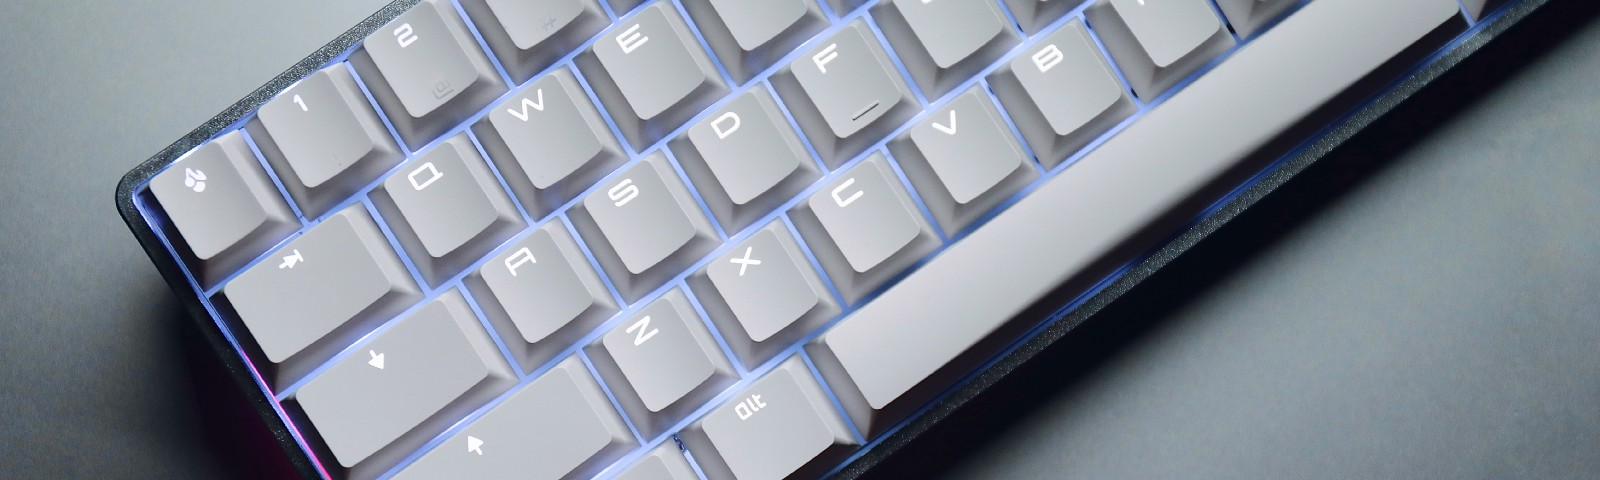 a white mechanical keyboard with white leds